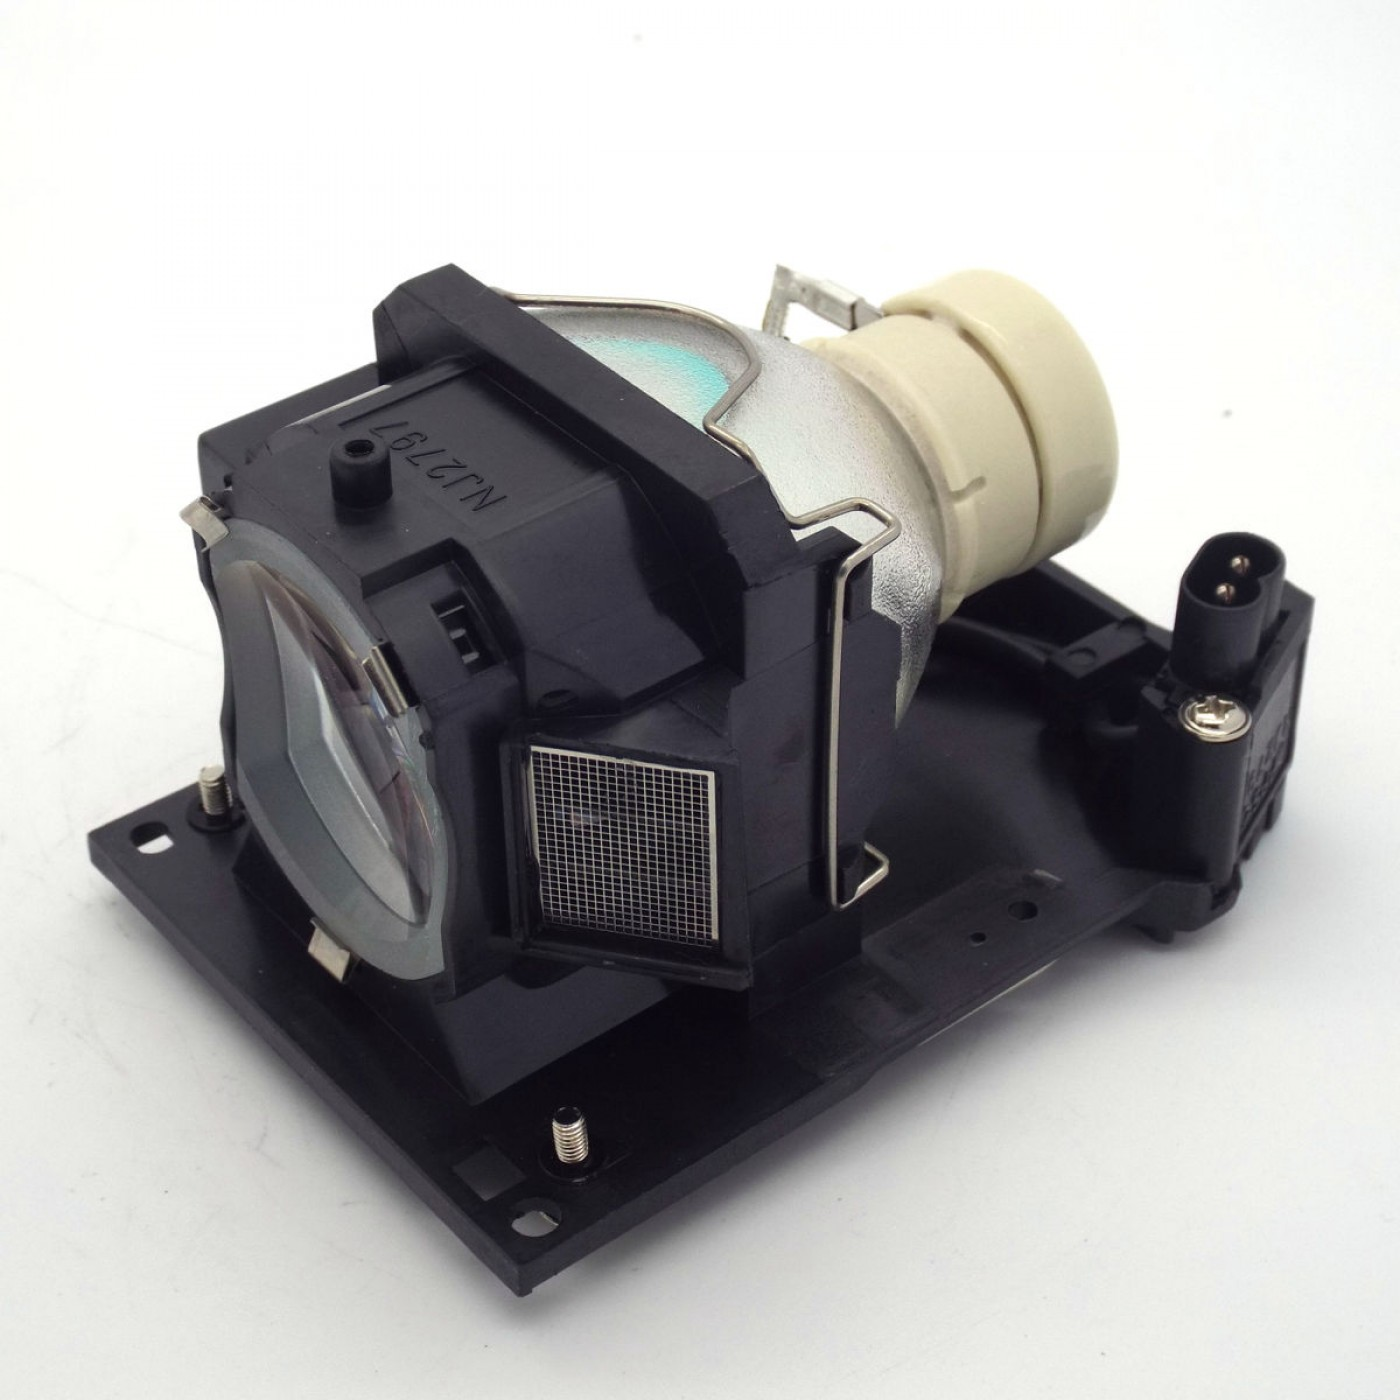 Hitachi Cp X2530wnprojector Assembly With Original Philips Bulb